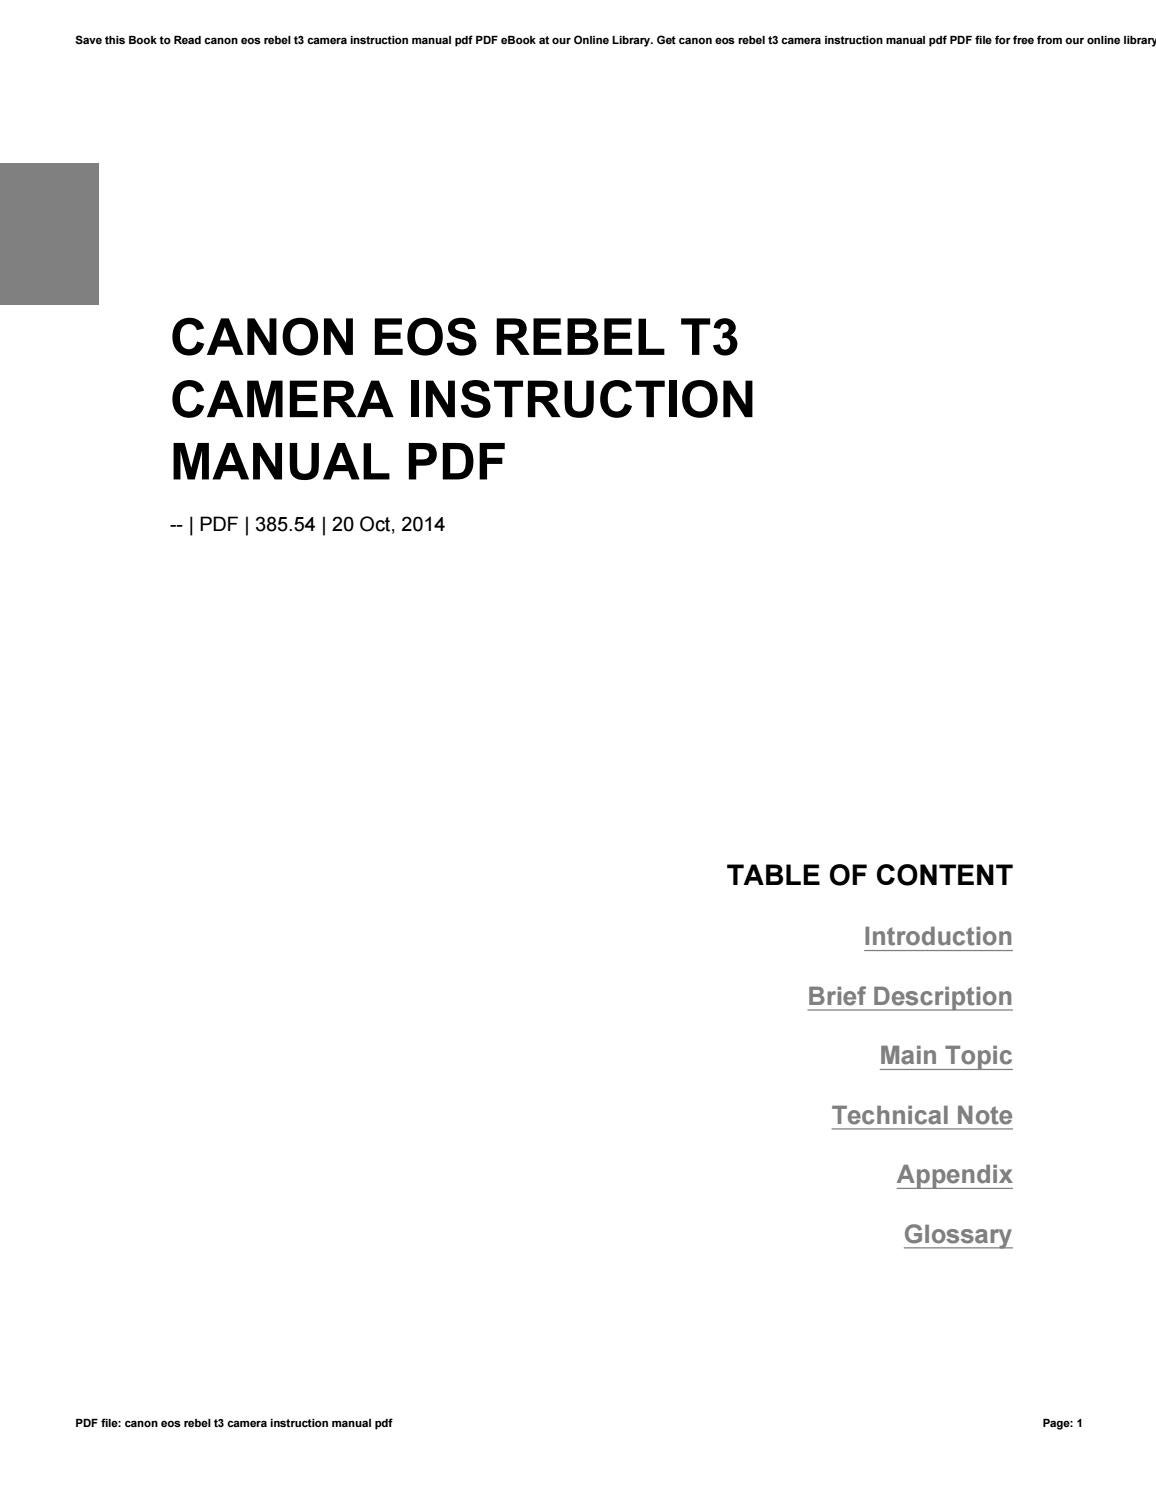 Canon eos rebel t3 camera instruction manual pdf